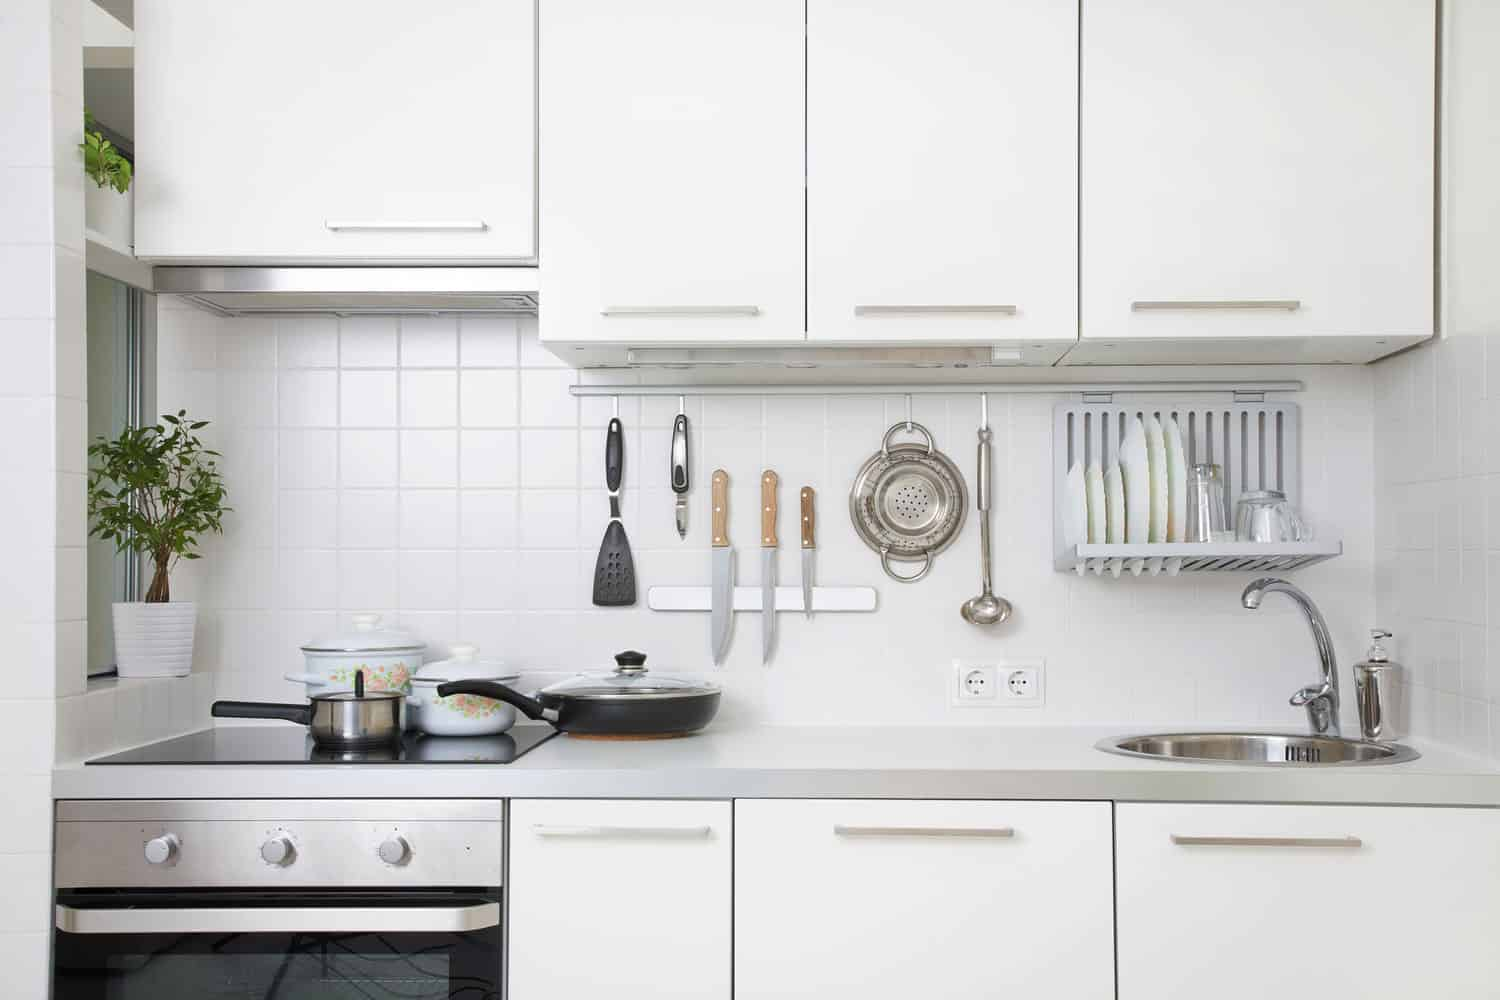 Modern kitchen with utensils and cabinet